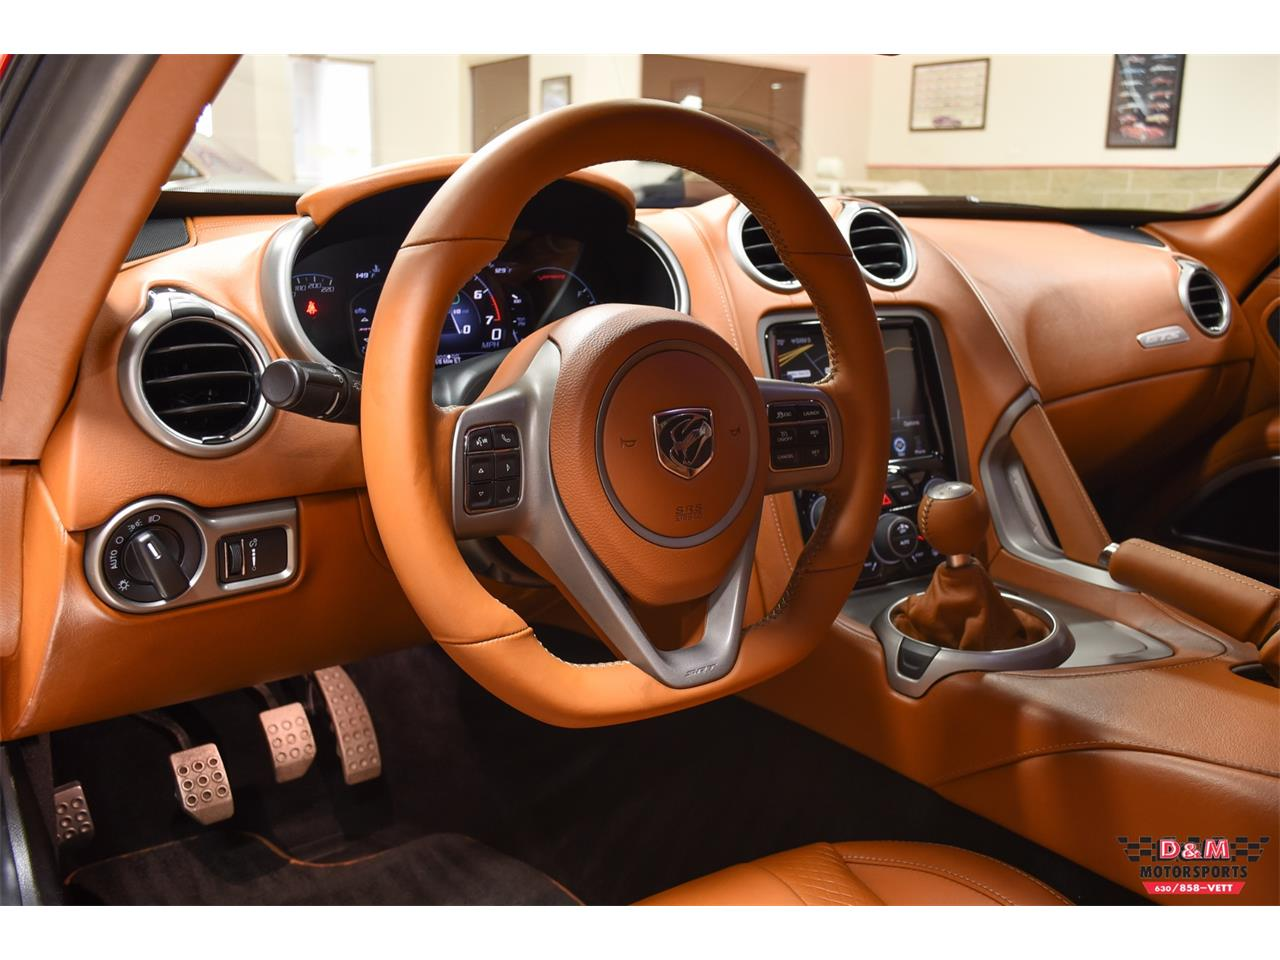 Large Picture of '13 Dodge Viper located in Glen Ellyn Illinois - $74,995.00 Offered by D & M Motorsports - PTPC